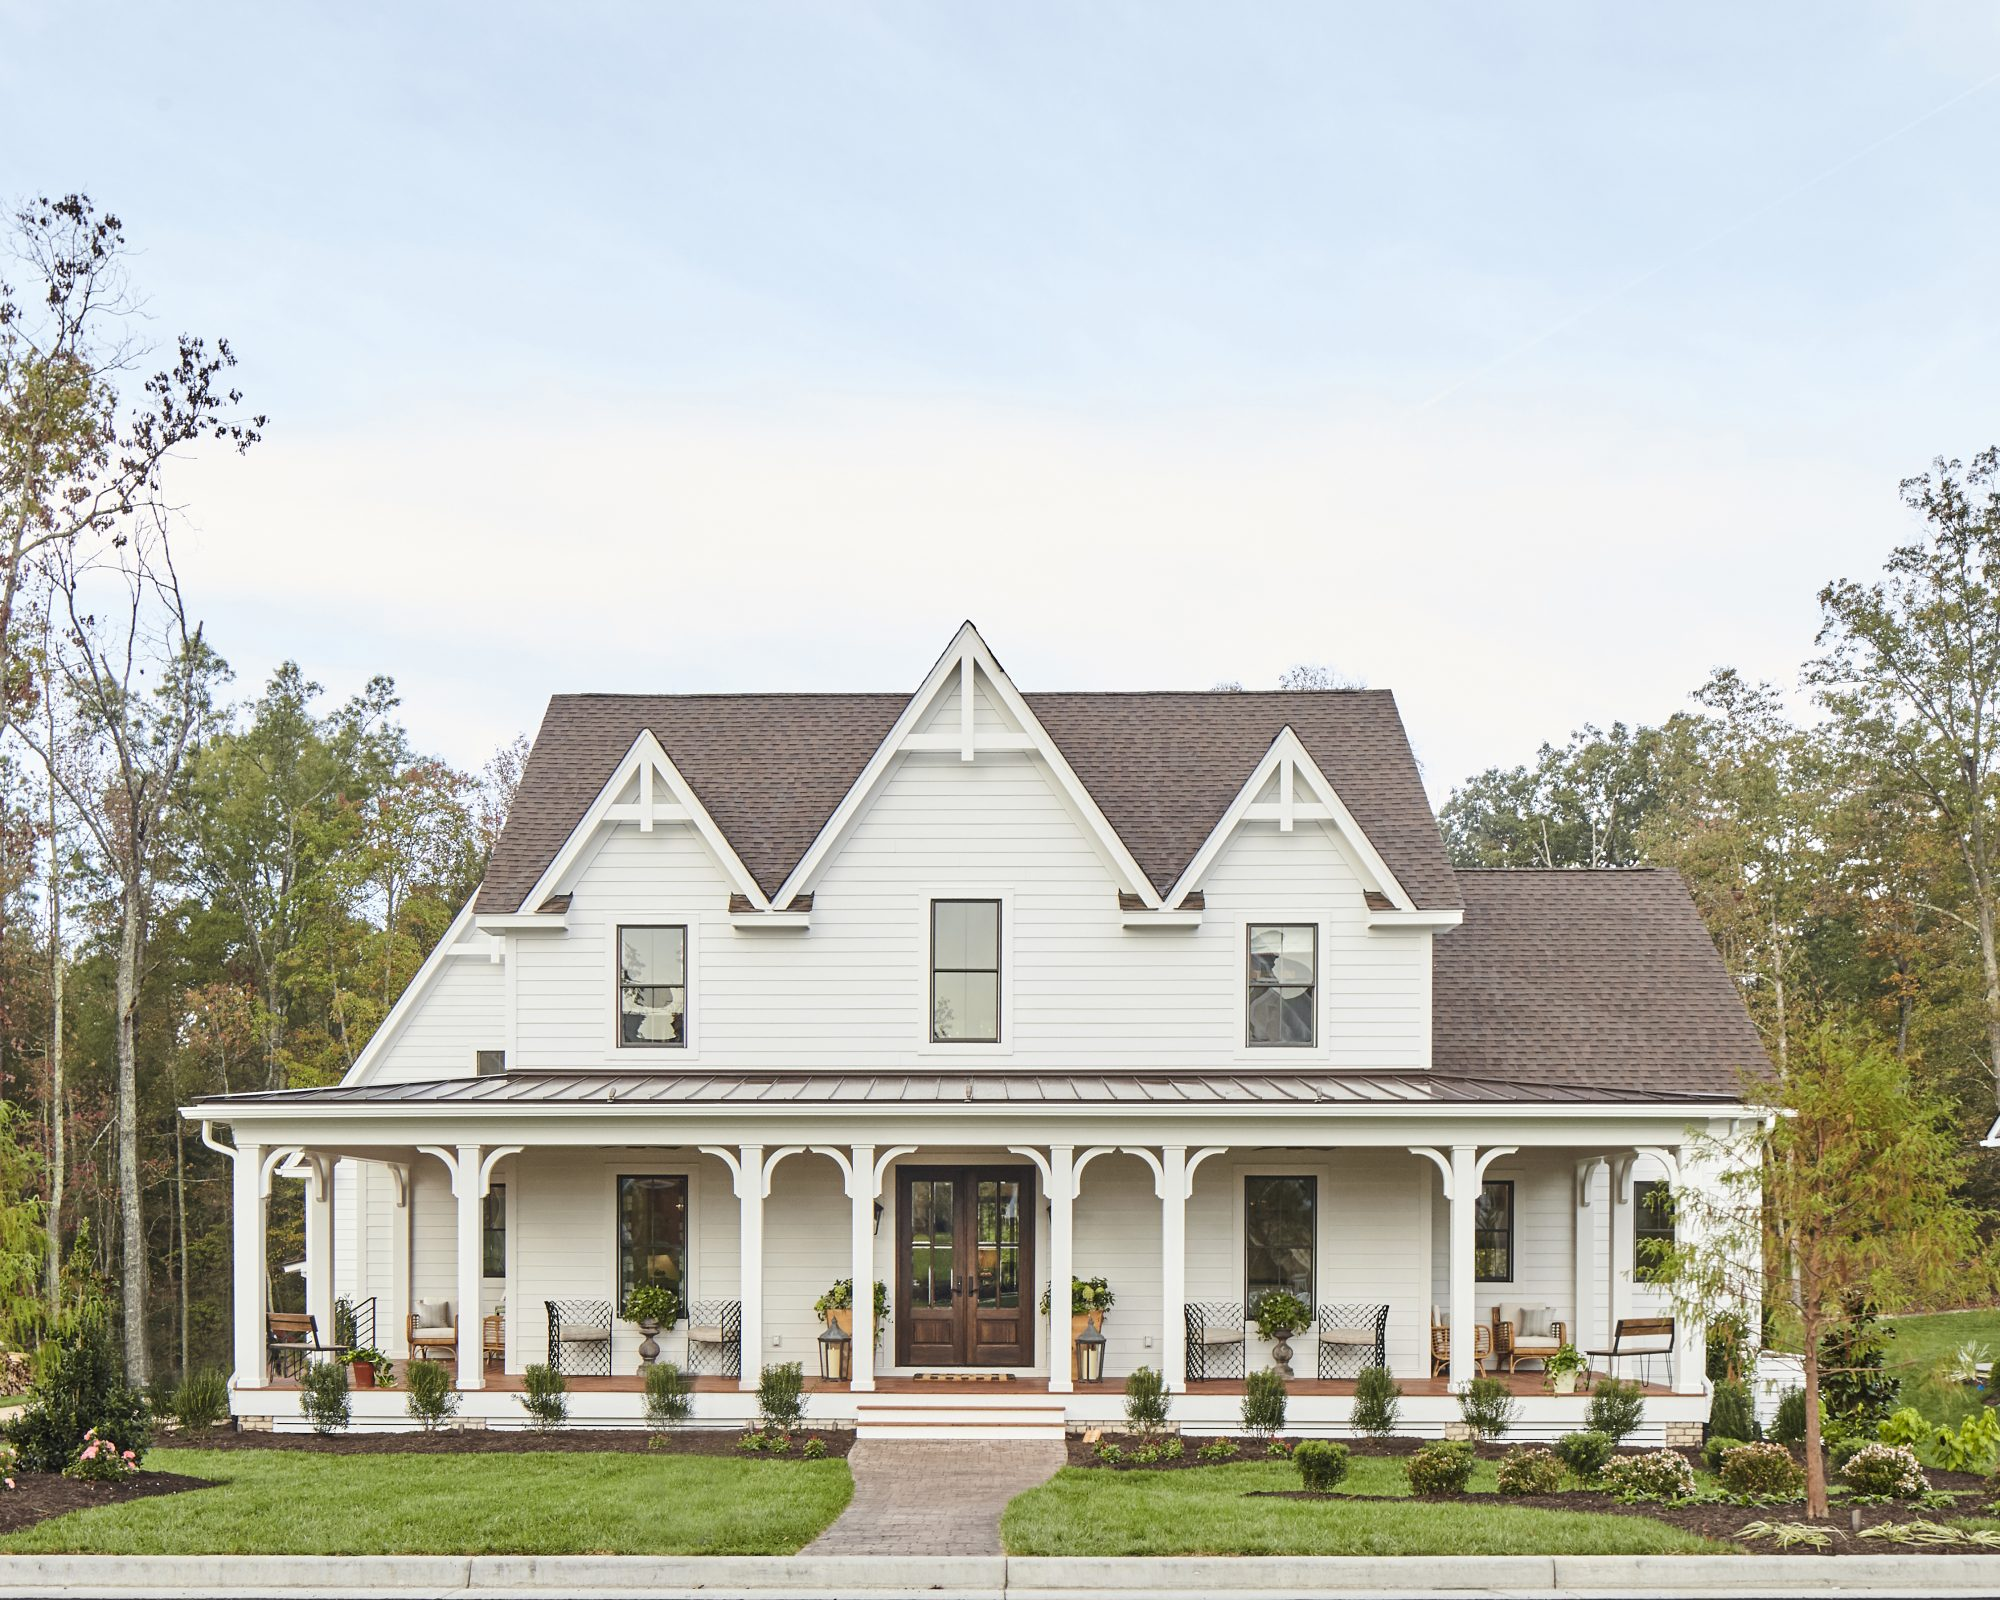 Farmhouse Style Was the Top-Searched Home Trend of 2019, Proving Once Again It's Here to Stay